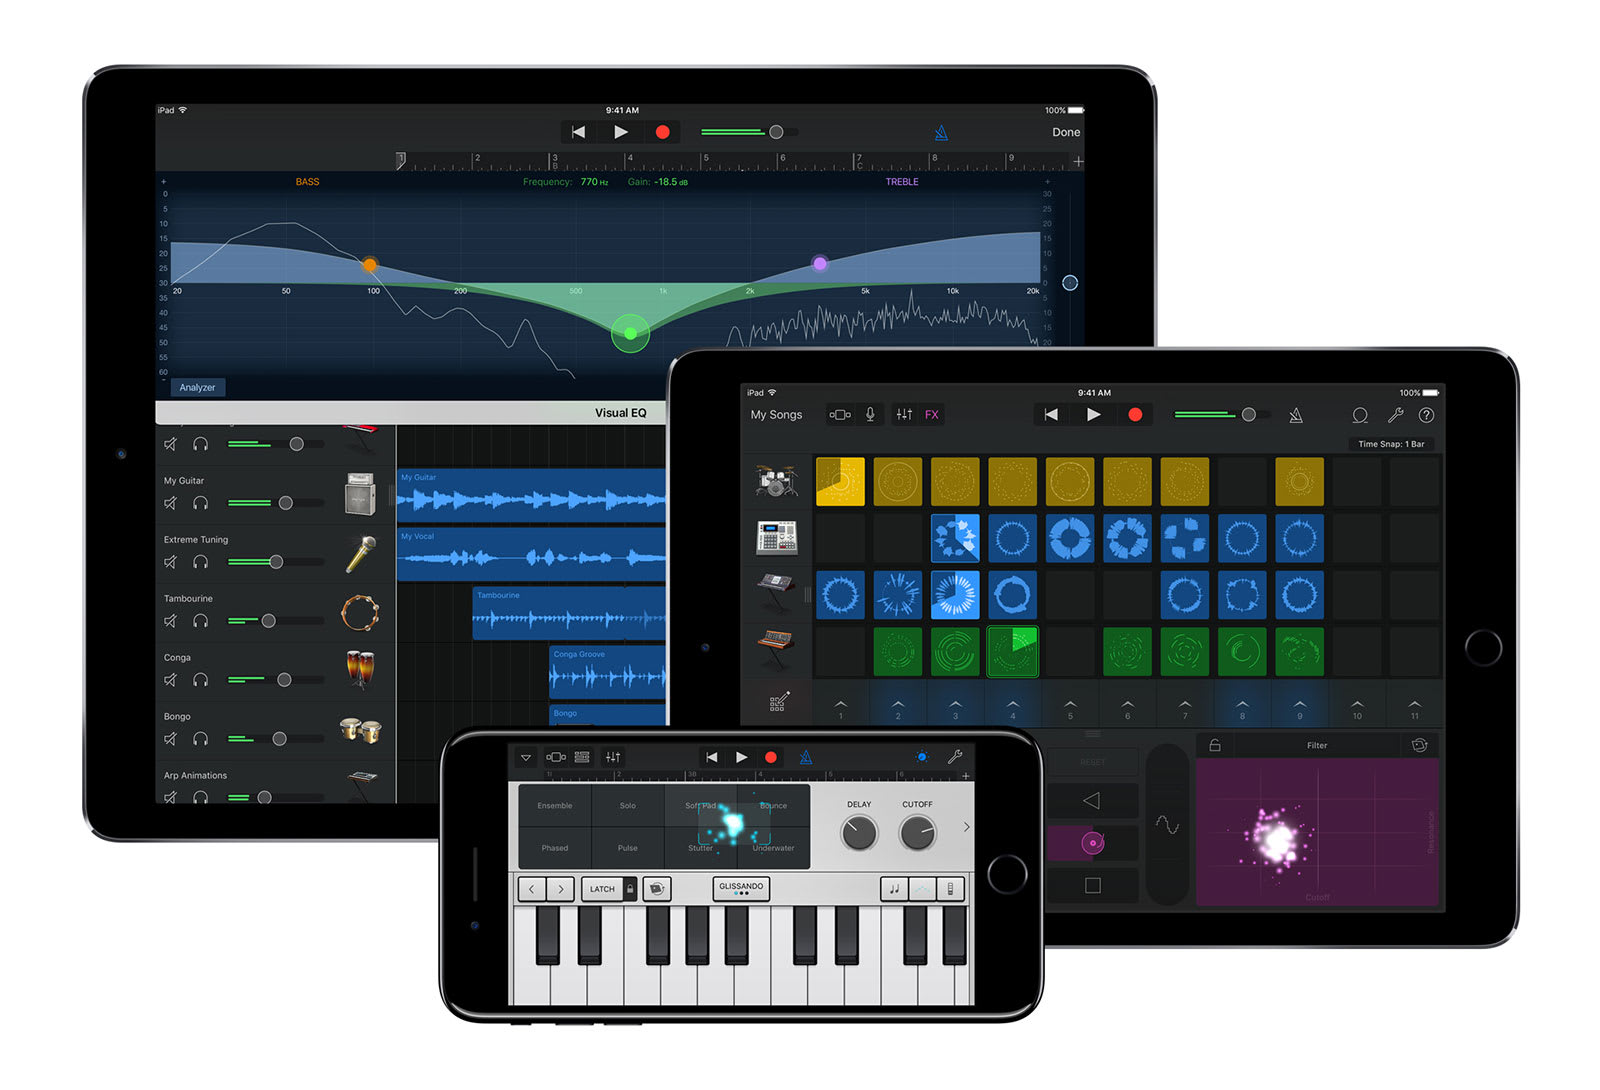 GarageBand on iOS is now a more capable music production suite